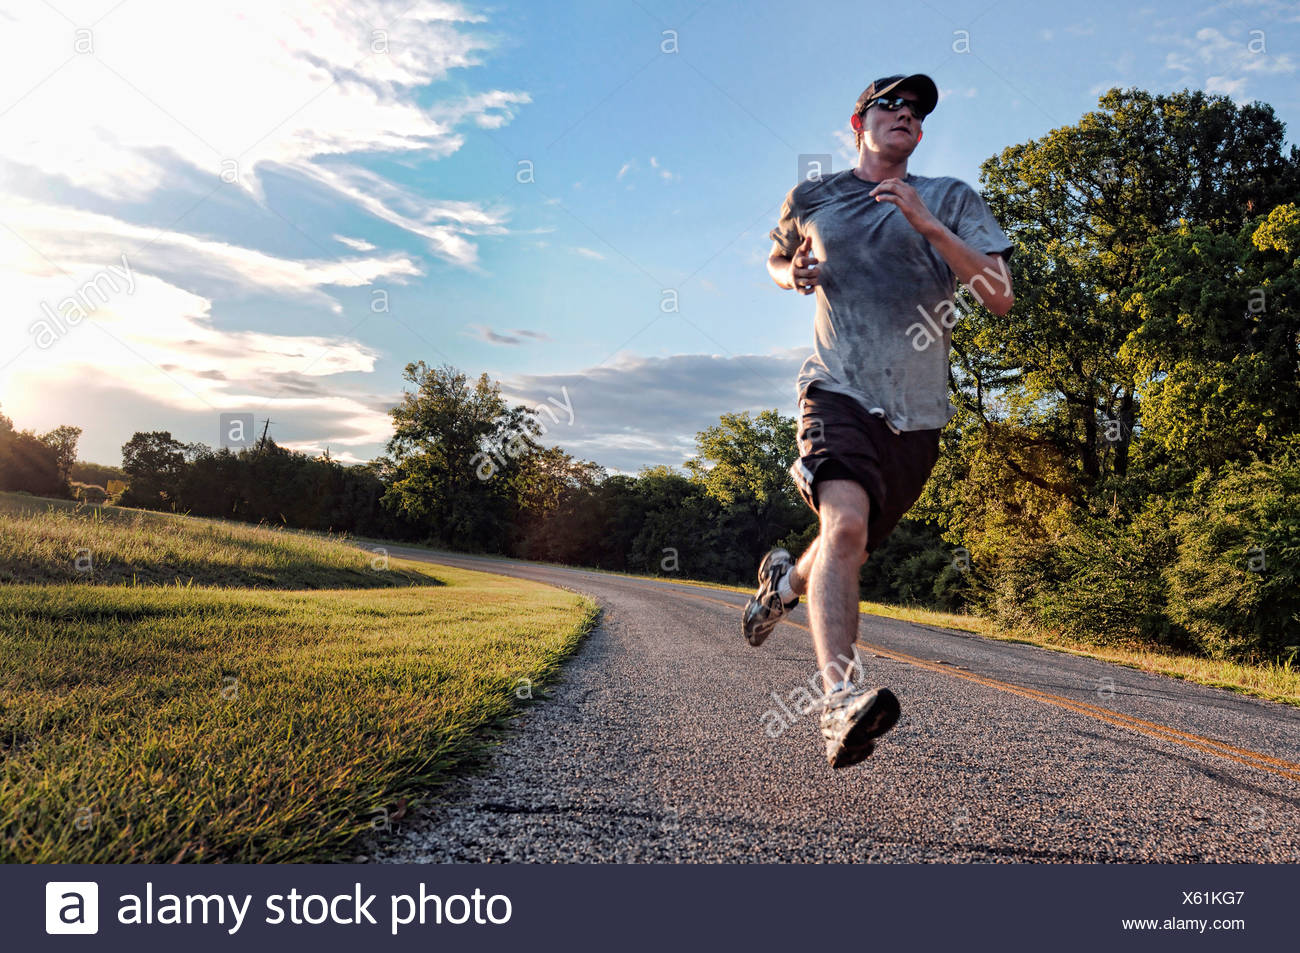 A young man runs along a road during a colorful sunset. - Stock Image